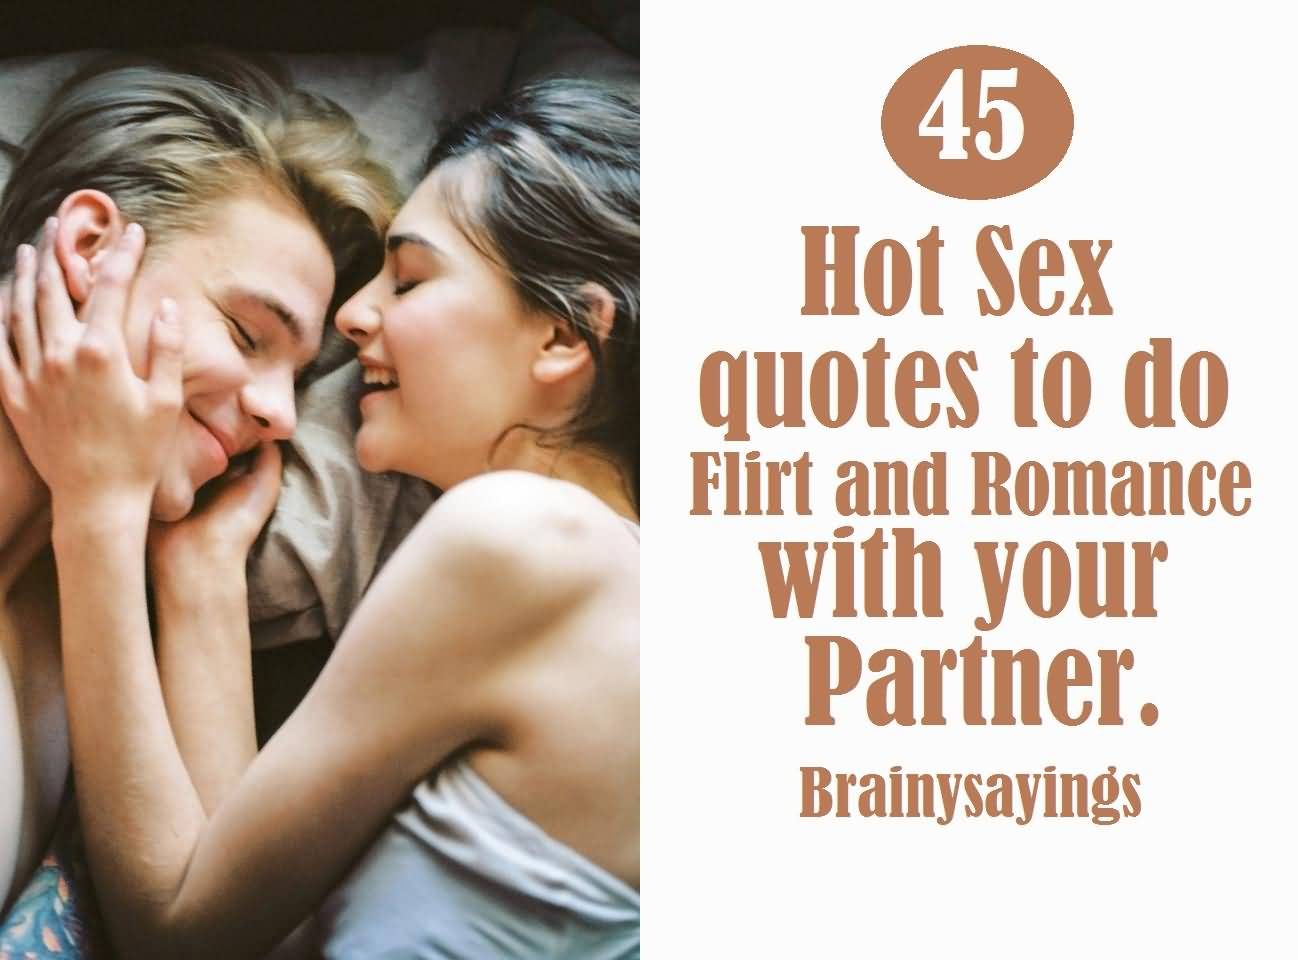 45 Hot Sex Quotes To Do Flirt And Romance With Your Partner